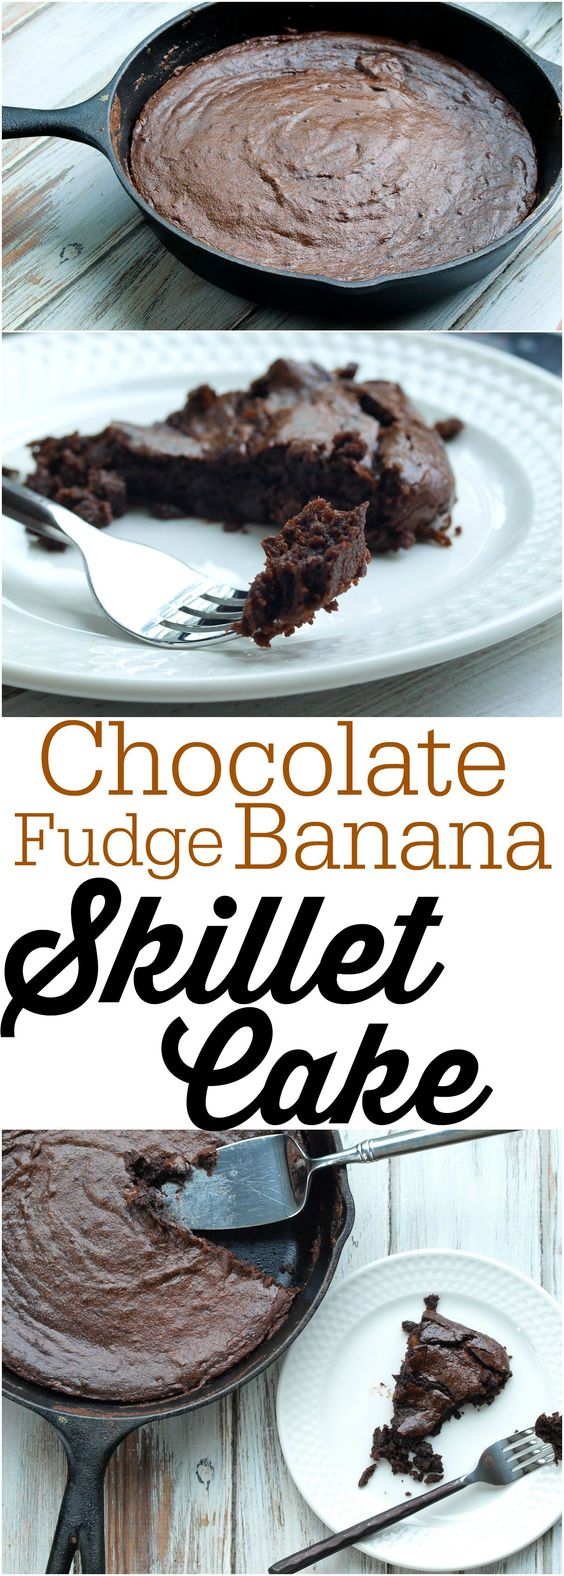 Chocolate Fudge Banana Skillet Cake Recipe--You can make this healthy skillet cake from start to finish in 20 minutes!!  Your dessert is waiting. :)  Vegan and paleo friendly.  No flour and no refined sugar!